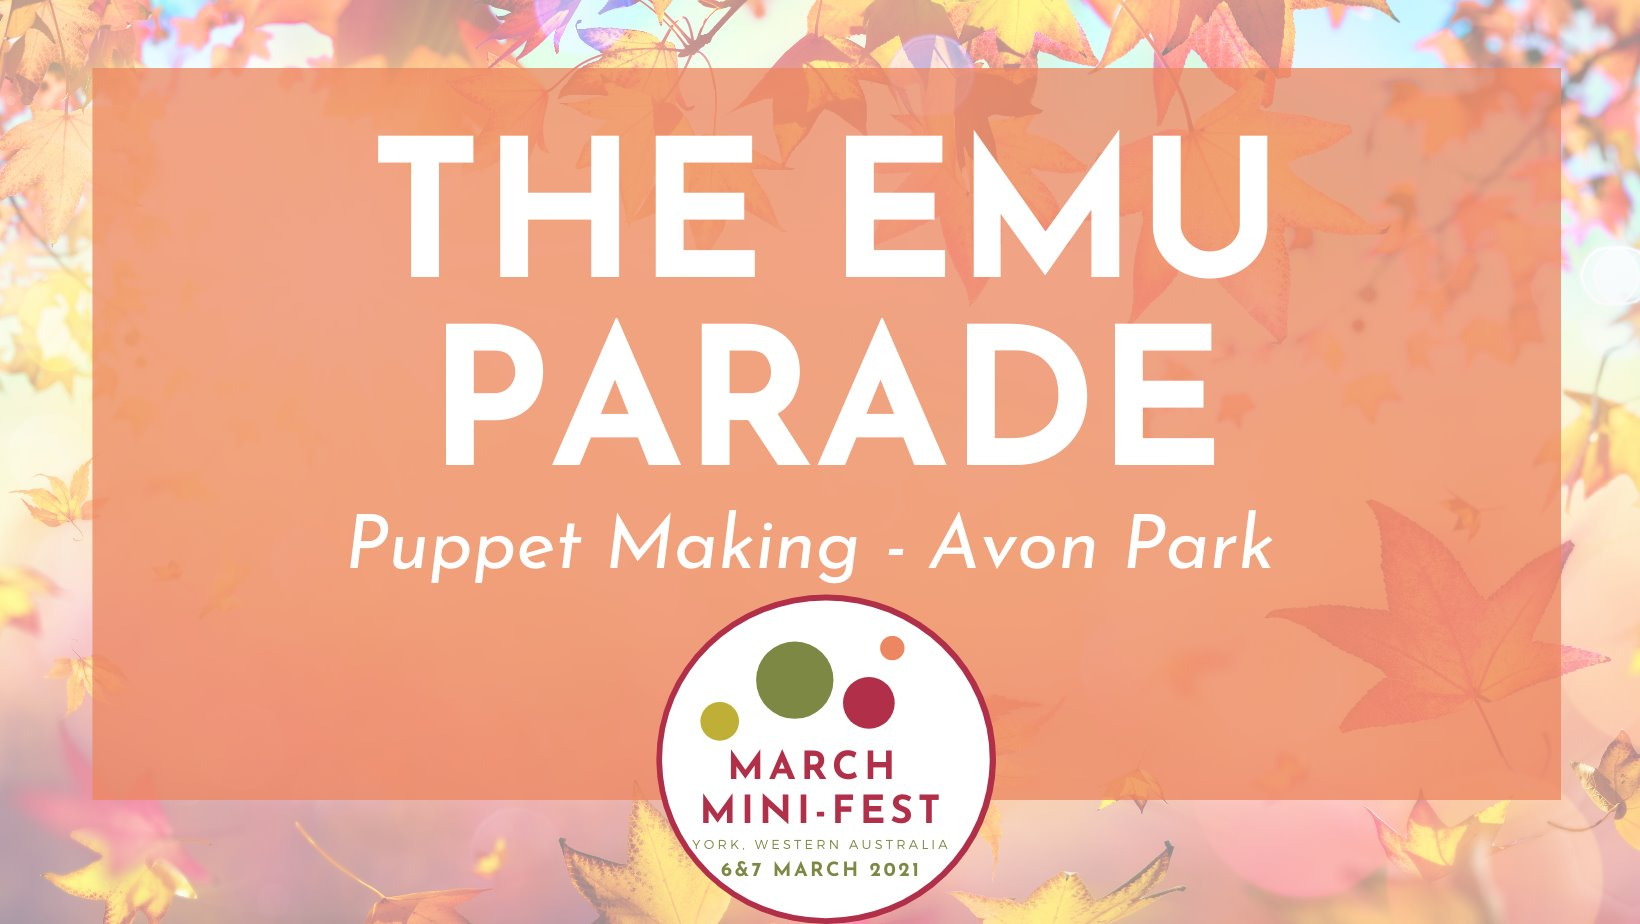 March Mini Fest - The Emu Parade (Puppet Making)